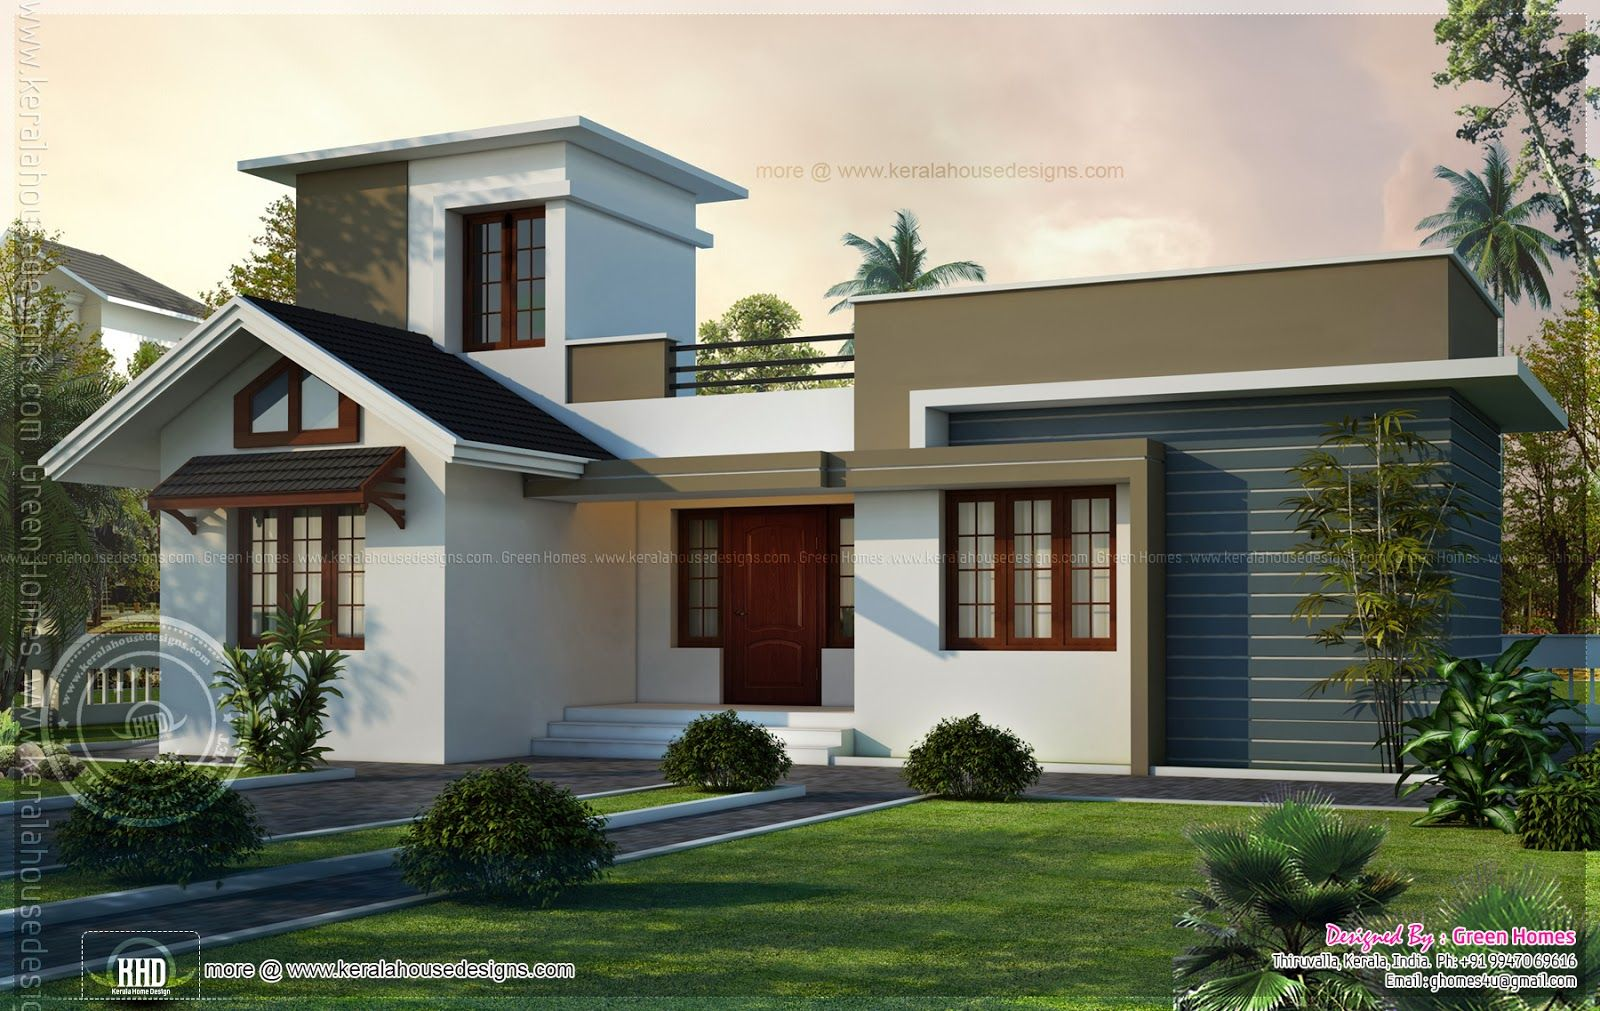 Small House With Stair Room Small House Design Kerala Small House Design Small House